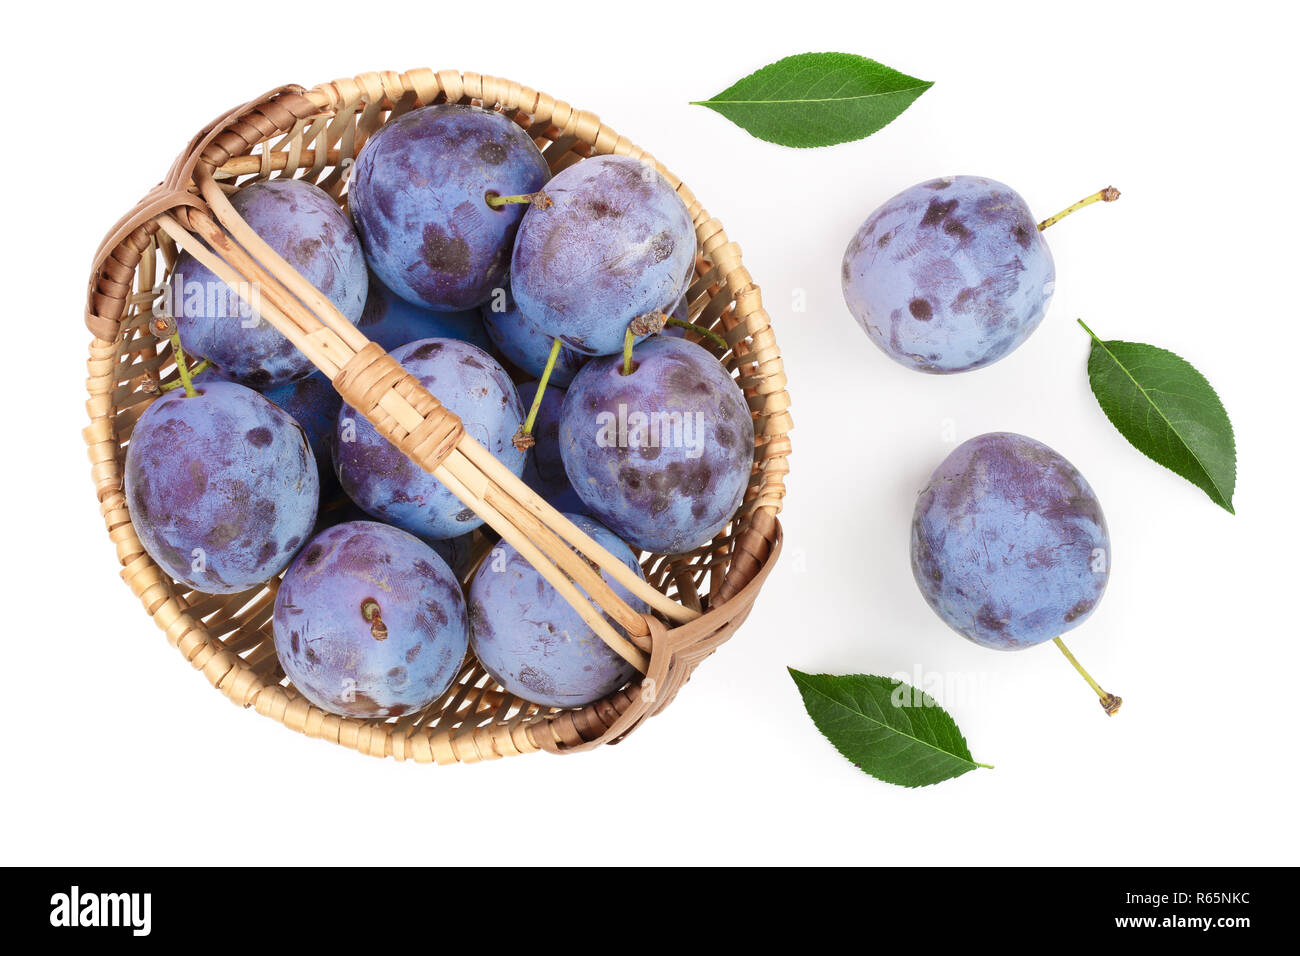 plums in wicker basket isolated on a white background. Top view. Flat lay pattern Stock Photo